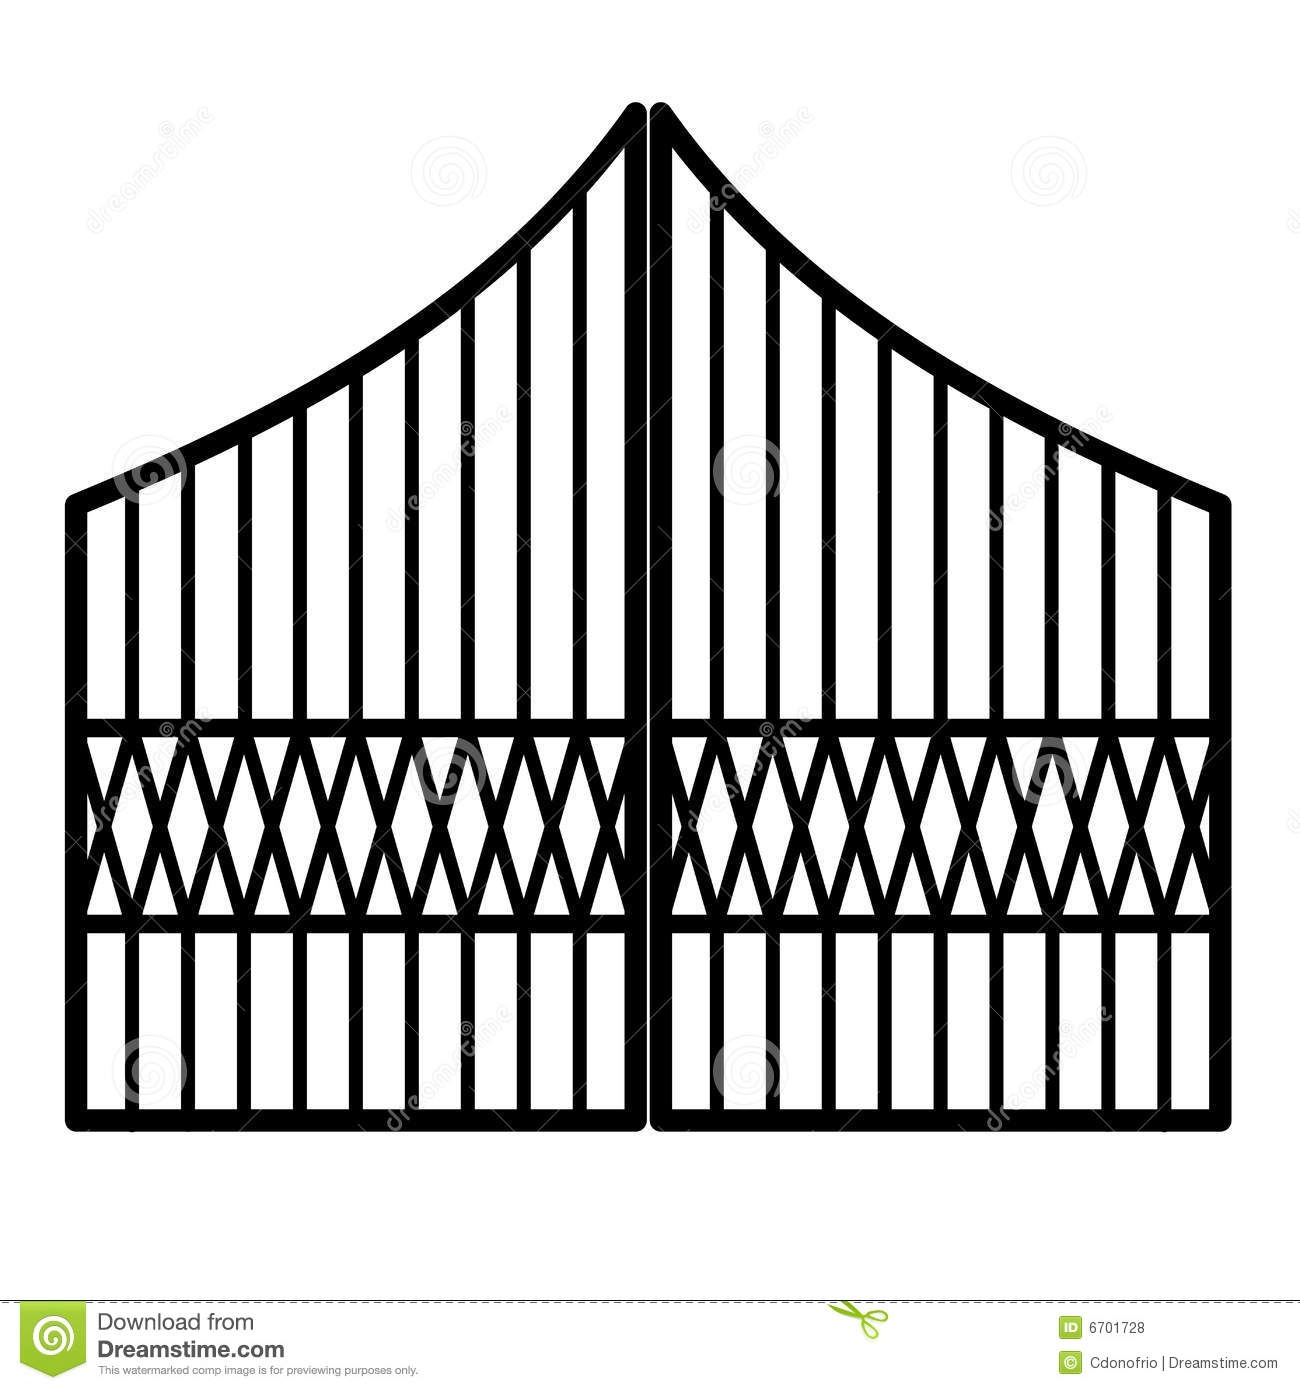 Gate clipart iron gate. Awesome collection digital k